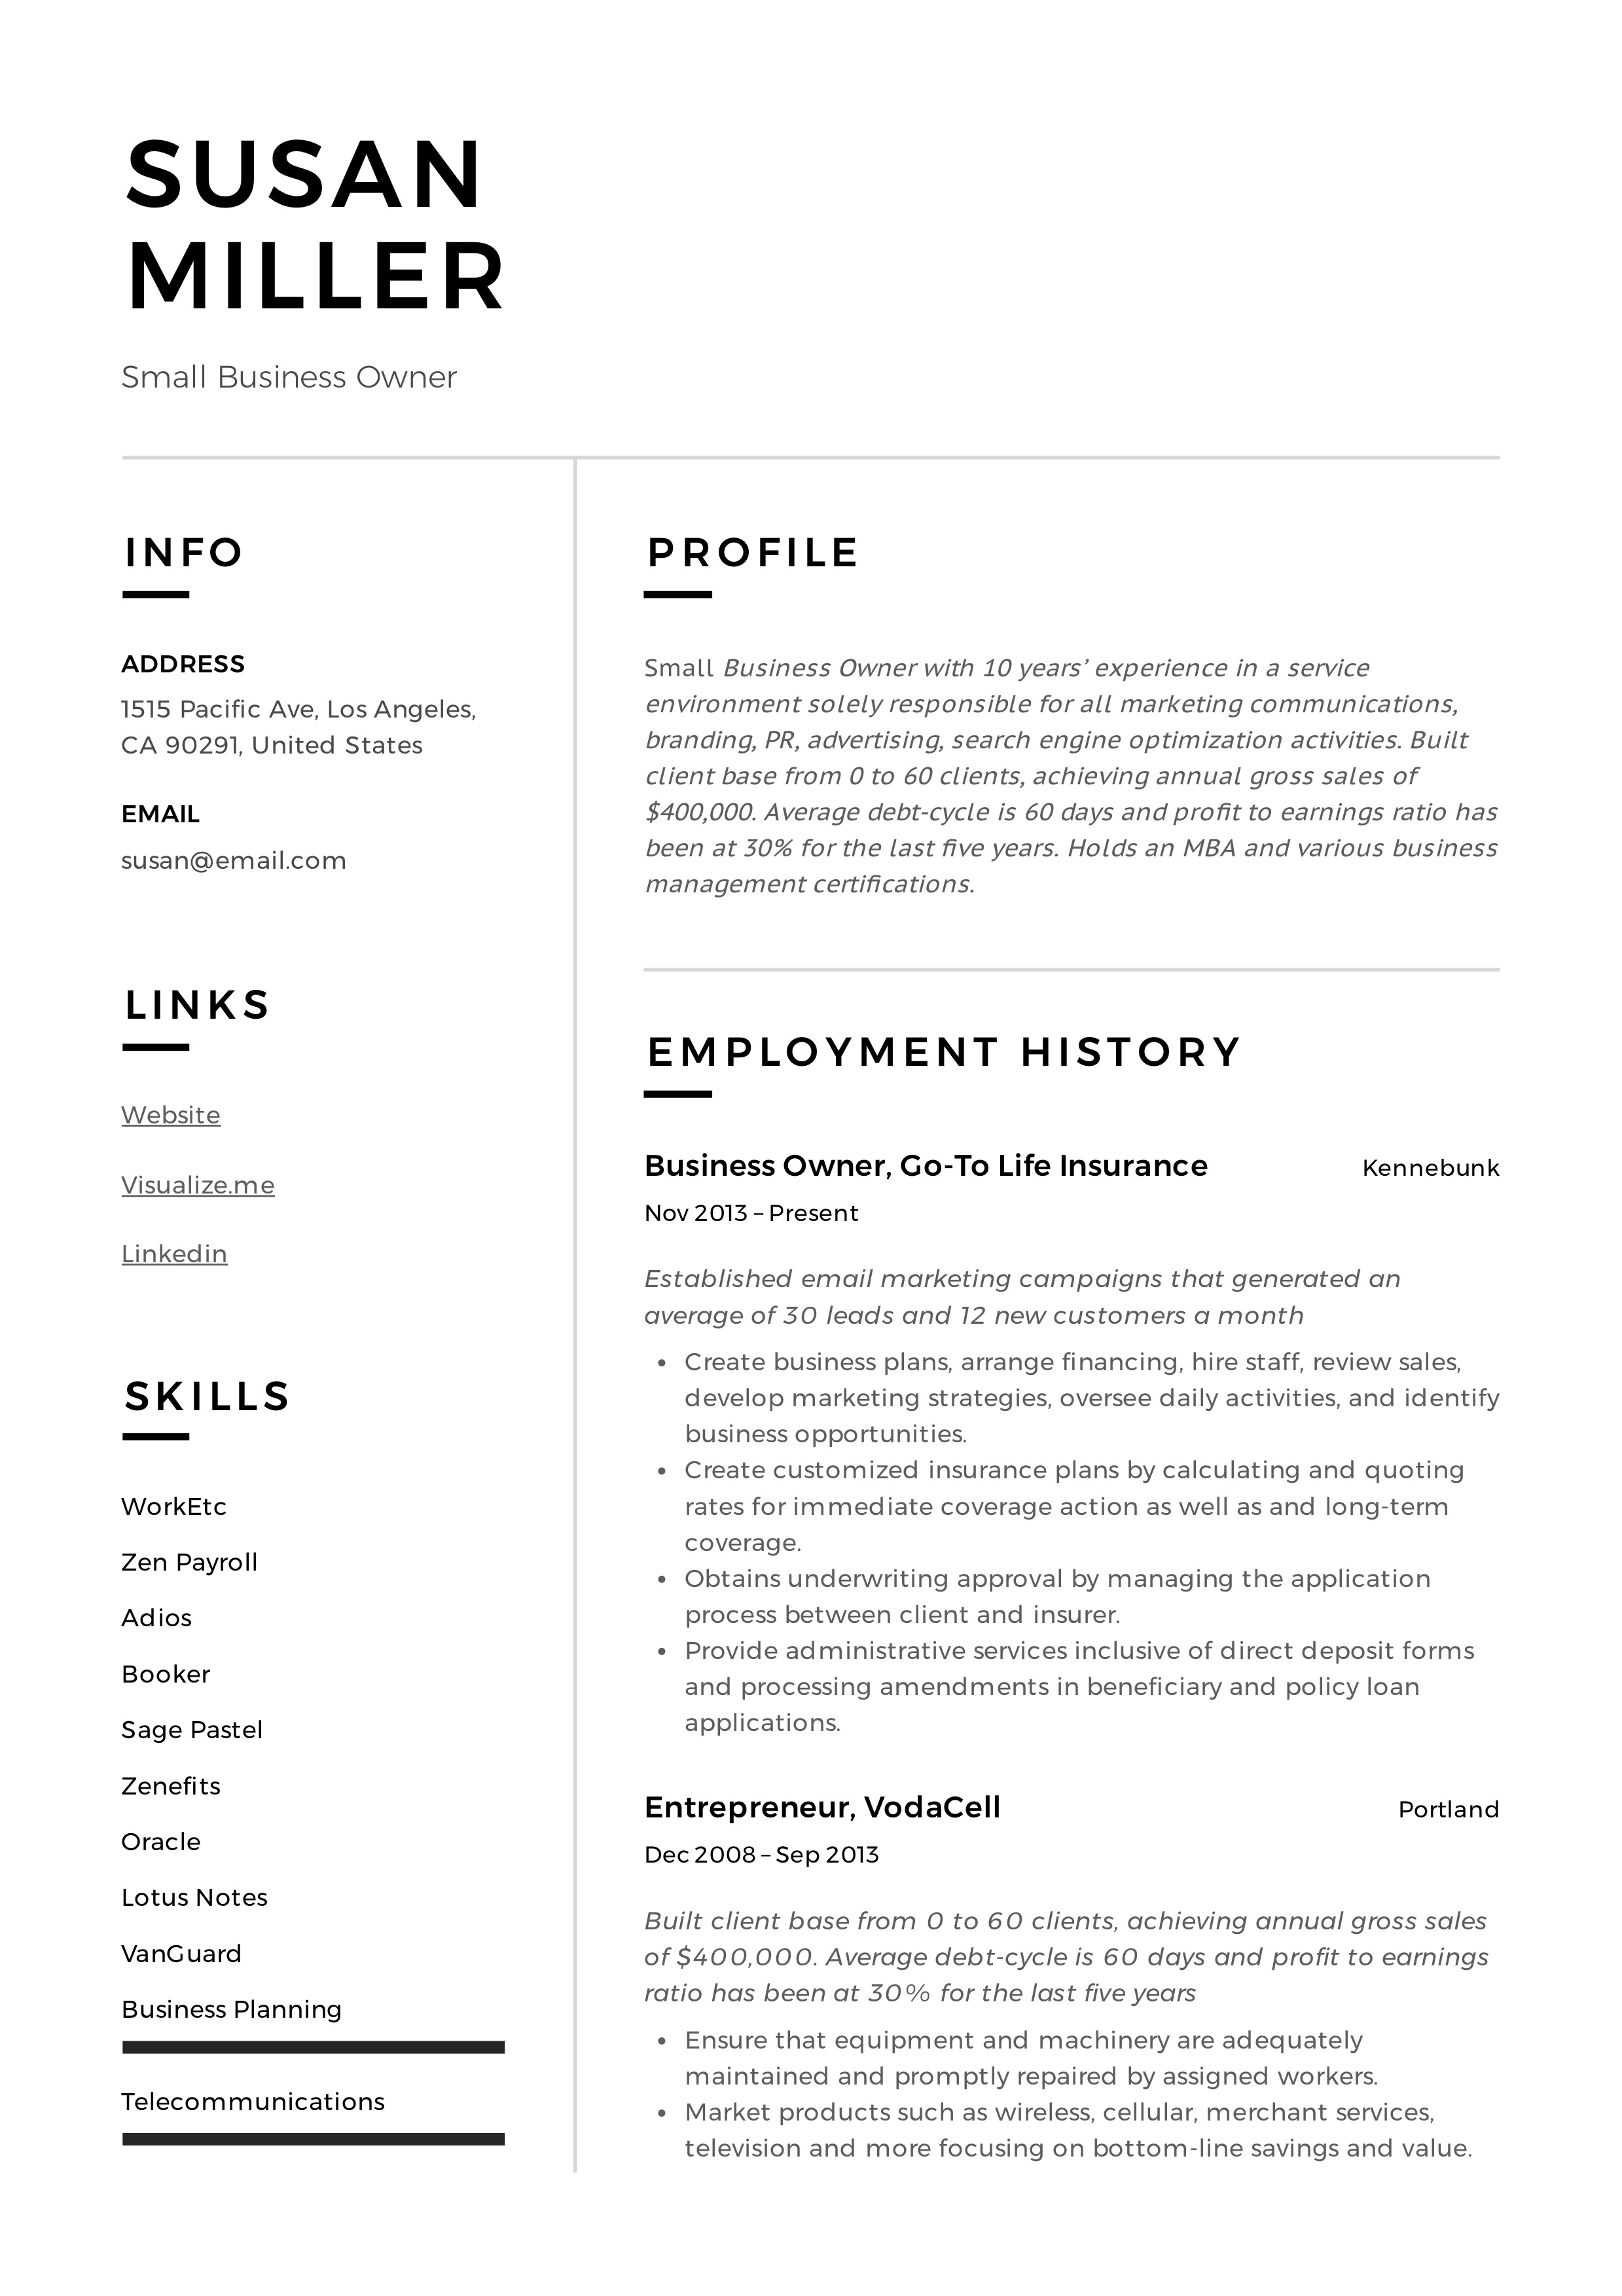 Small Business Owner Resume Guide 19 Examples Pdf 2020